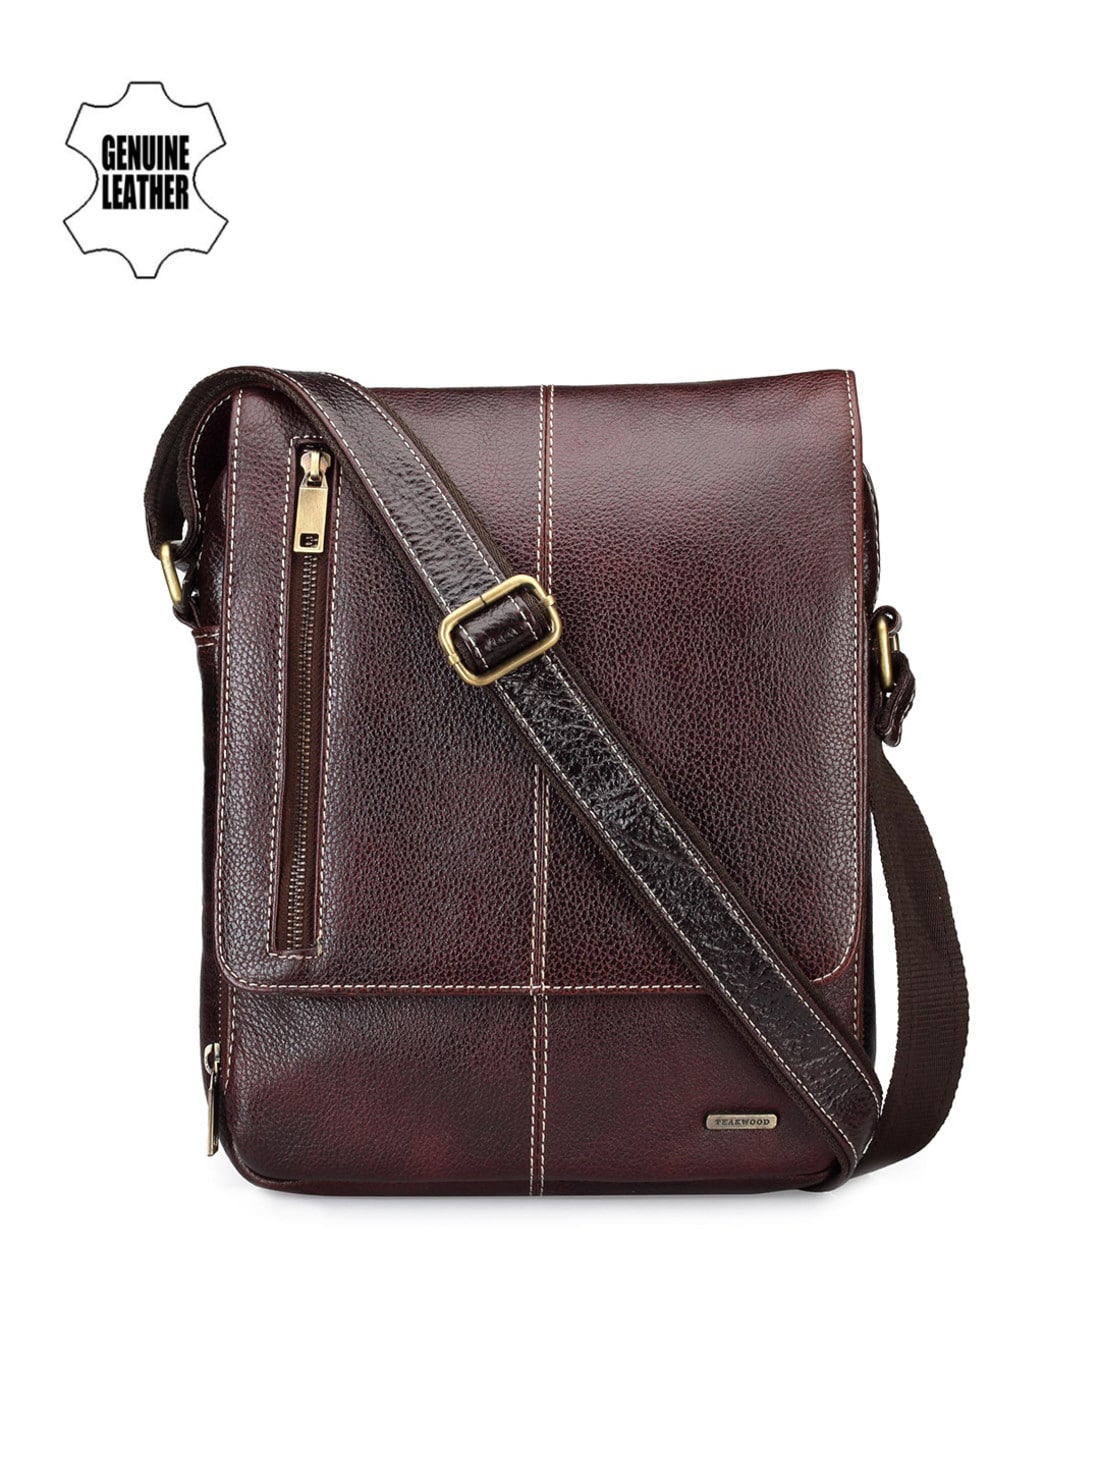 e9611f3b88 Messenger Bags - Buy Messenger Bags Online in India